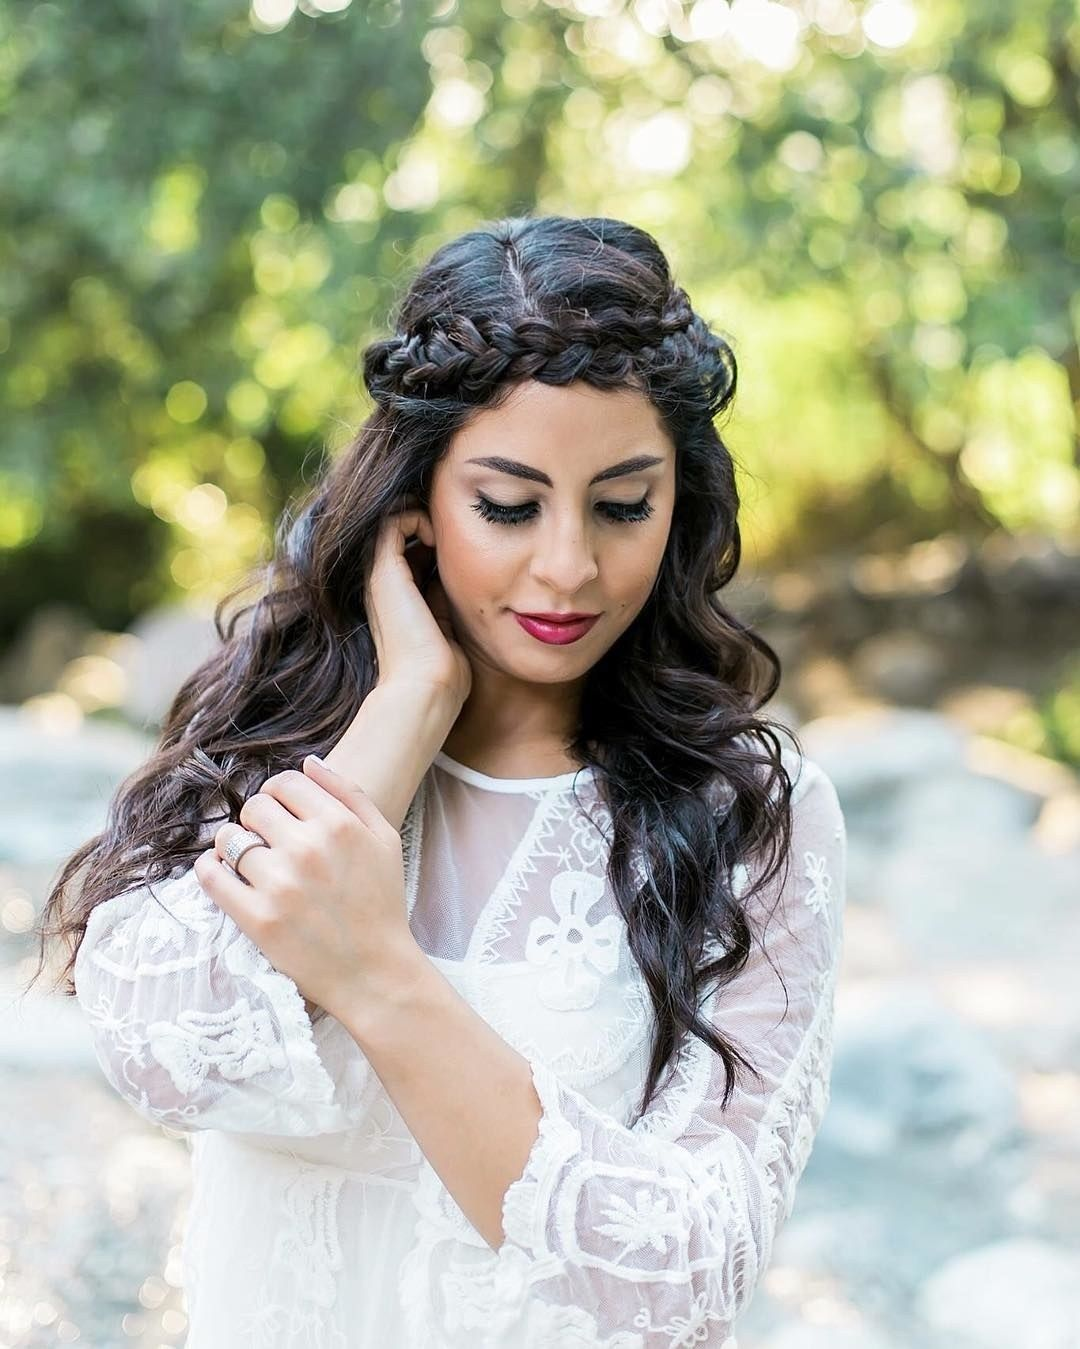 Half-Up, Half-Down Wedding Hairstyles For Every Type of Bride | Brides | Wedding hair down ...